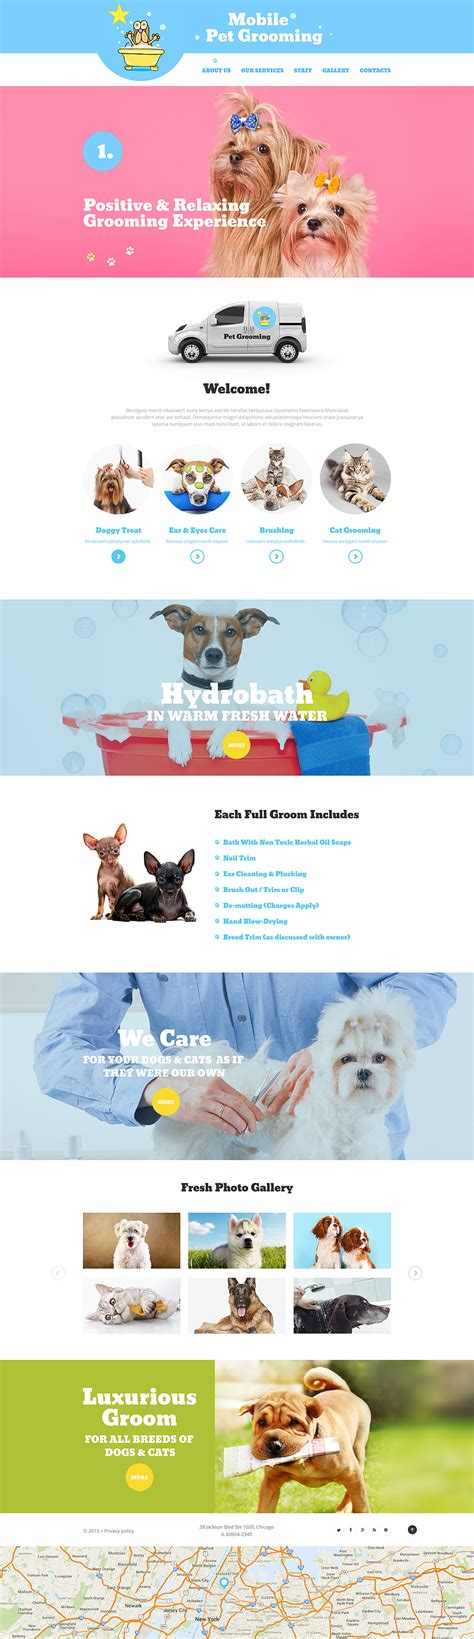 Mo Pets Digital Pets For Your Mobile by Mobile Pet Grooming 56074 By Zemez Website Templates